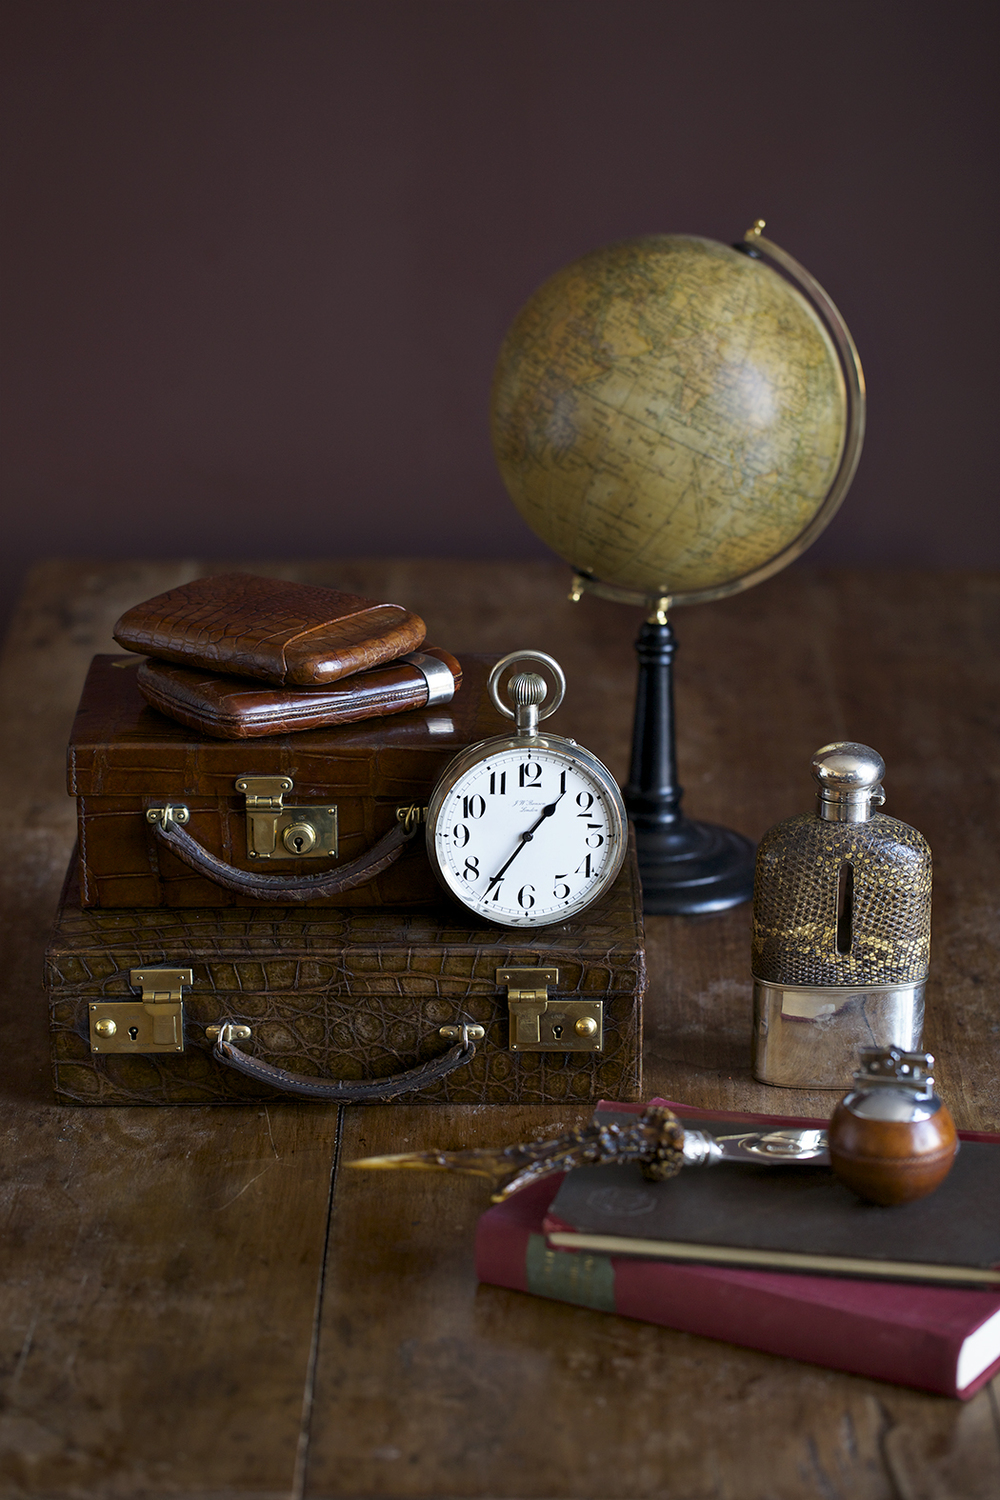 Evi-Abeler-Still-Life-Photography-New-York